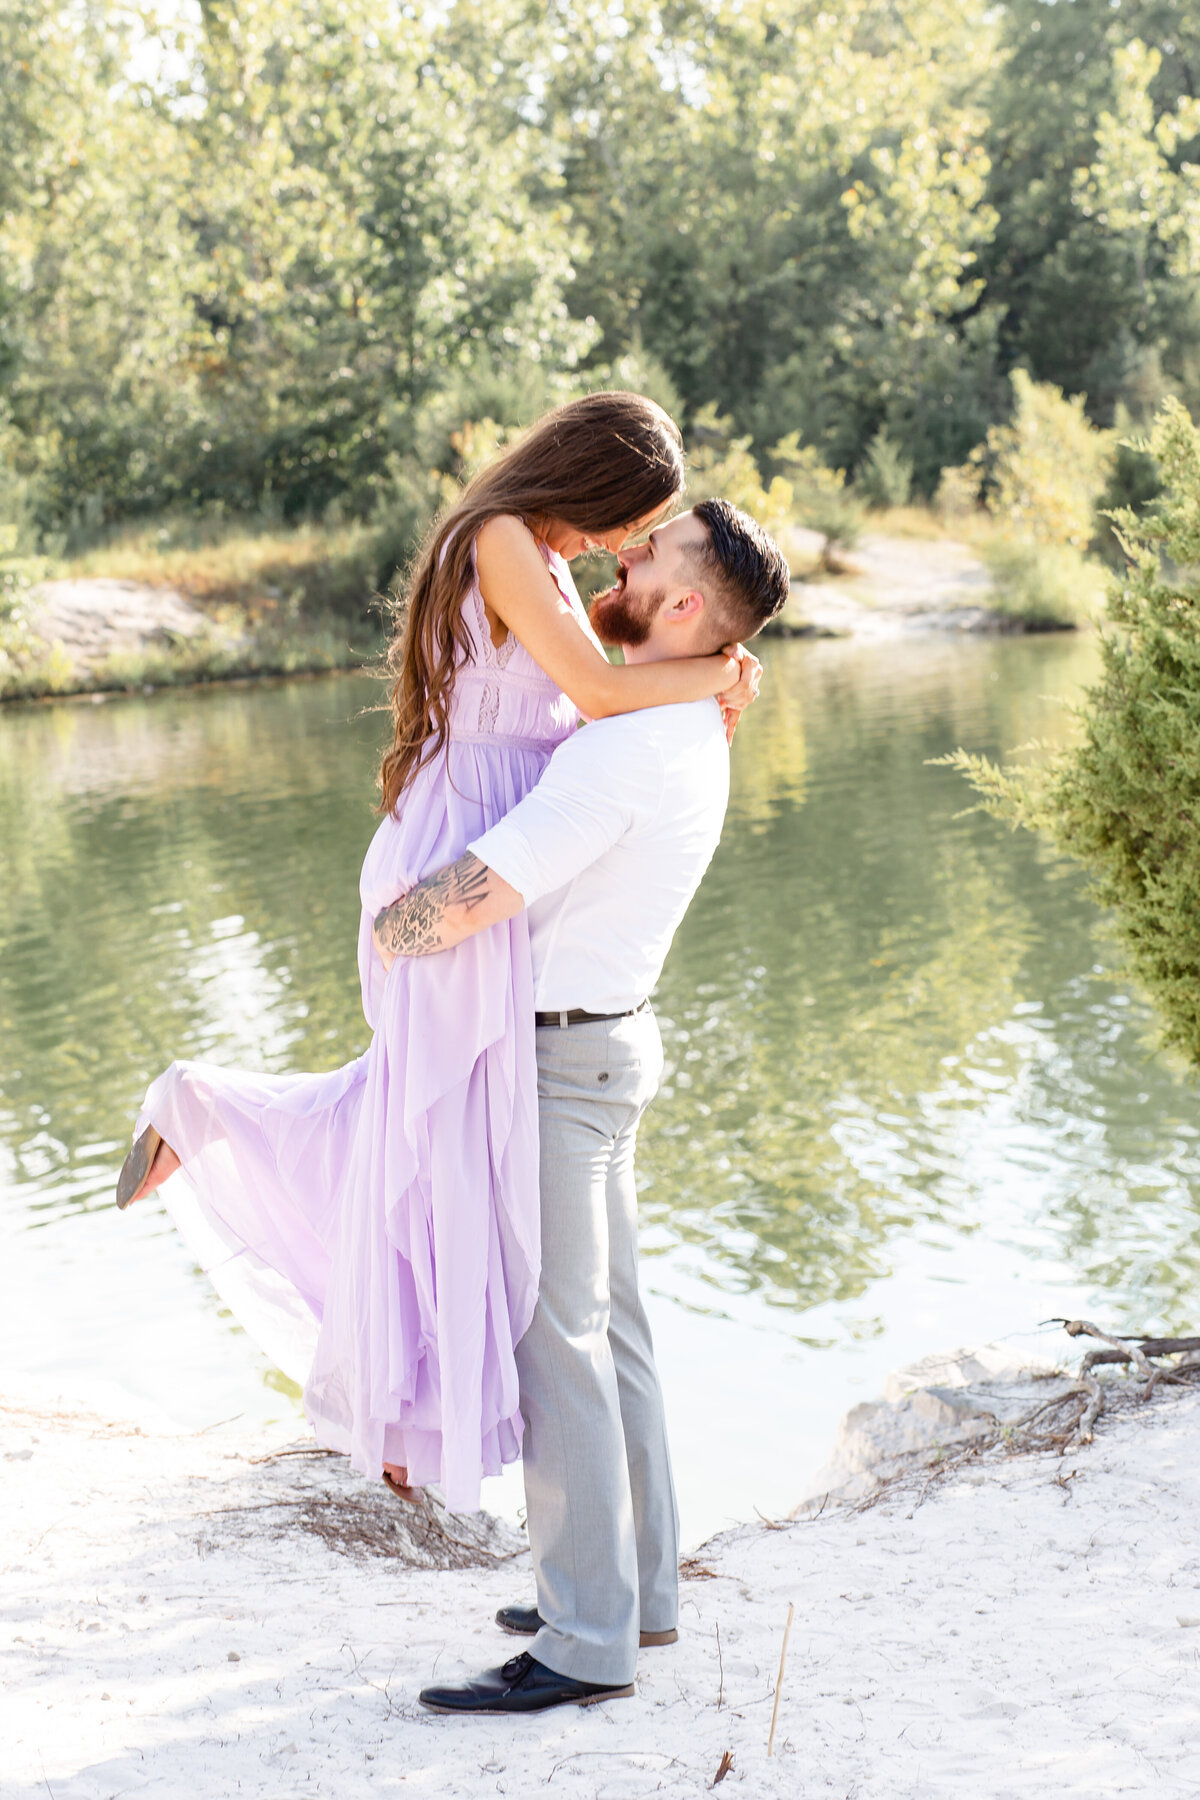 Summer Sunset Romantic Engagement Session in lavender maxi dress guy lifting girl on white sand by water at Klondike Park in St. Louis by Amy Britton Photography Photographer in St. Louis